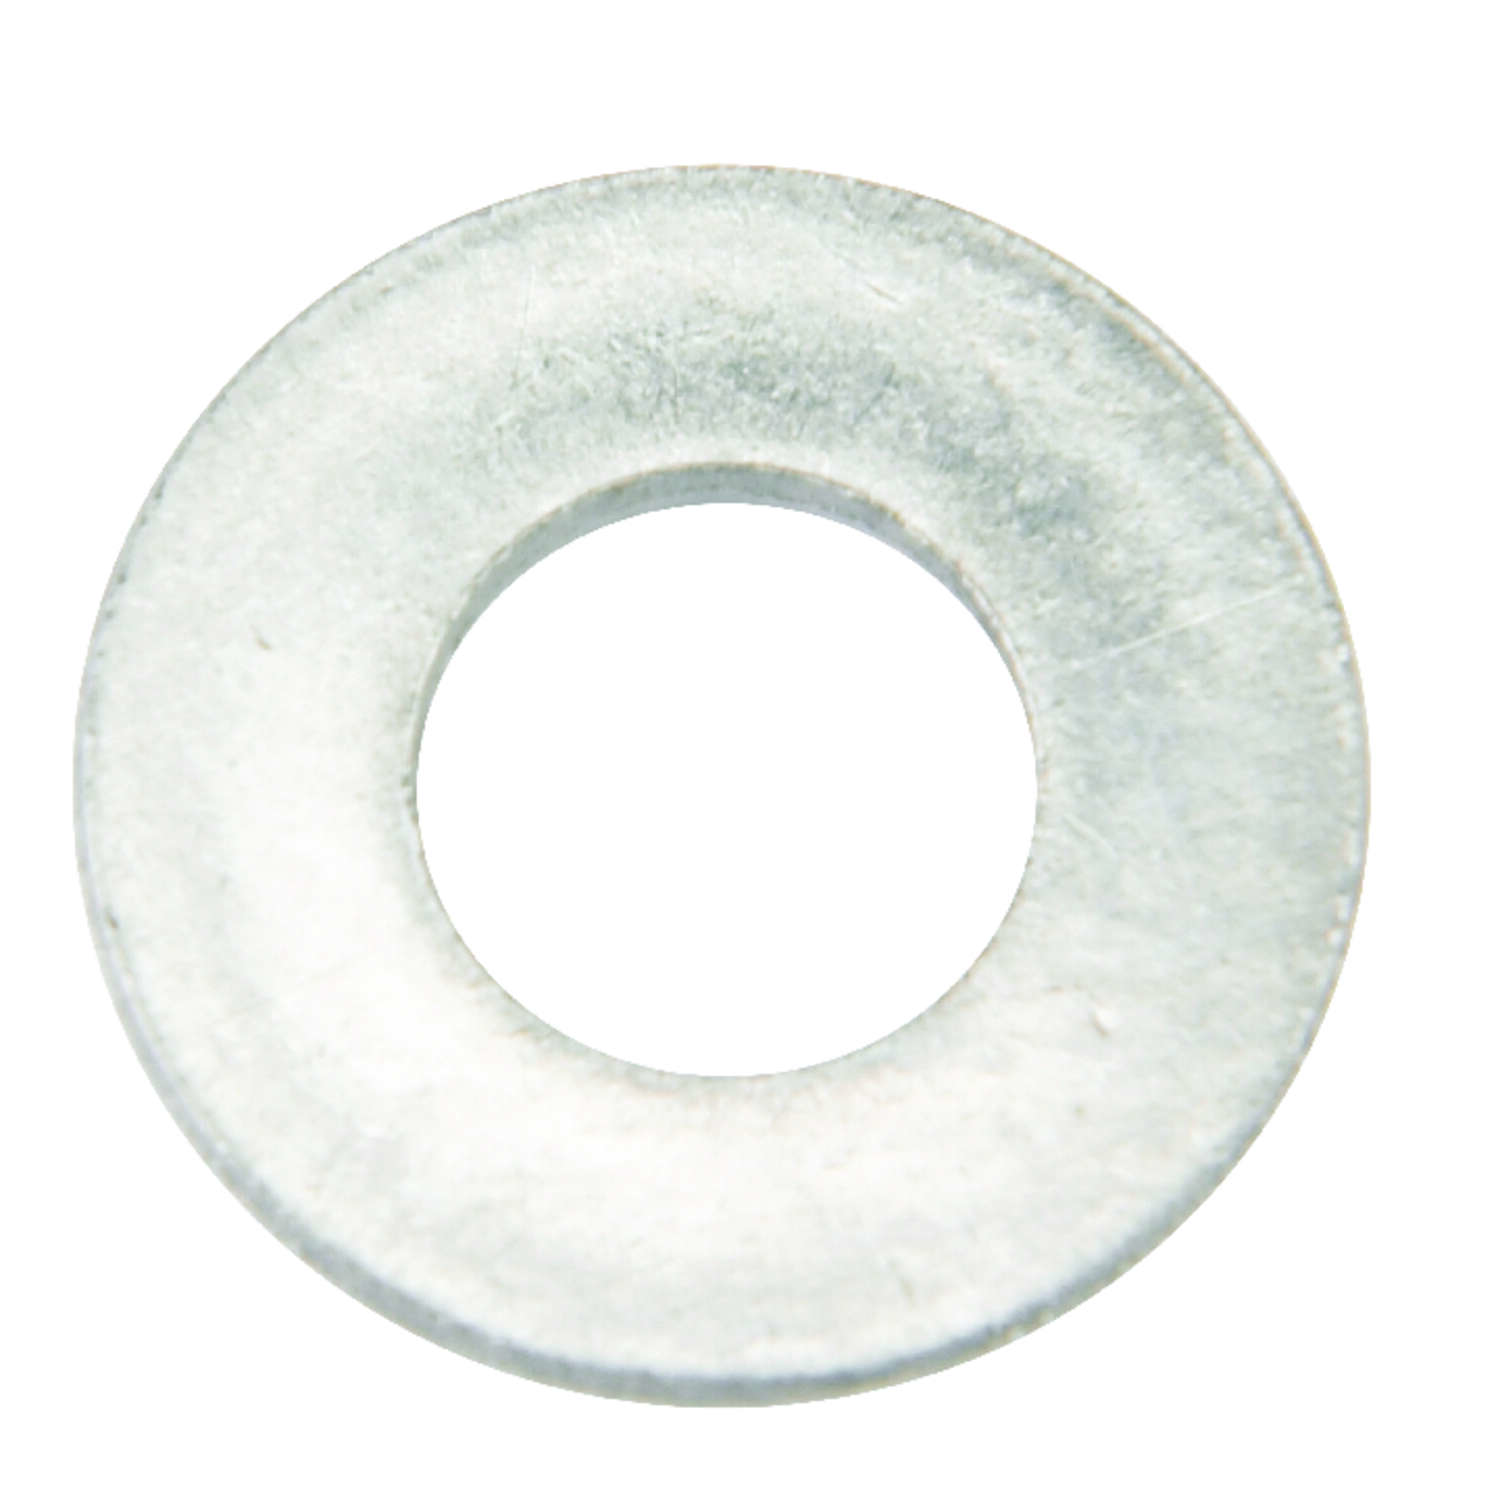 HILLMAN  Stainless Steel  No. 10 mm Flat Washer  100 pk